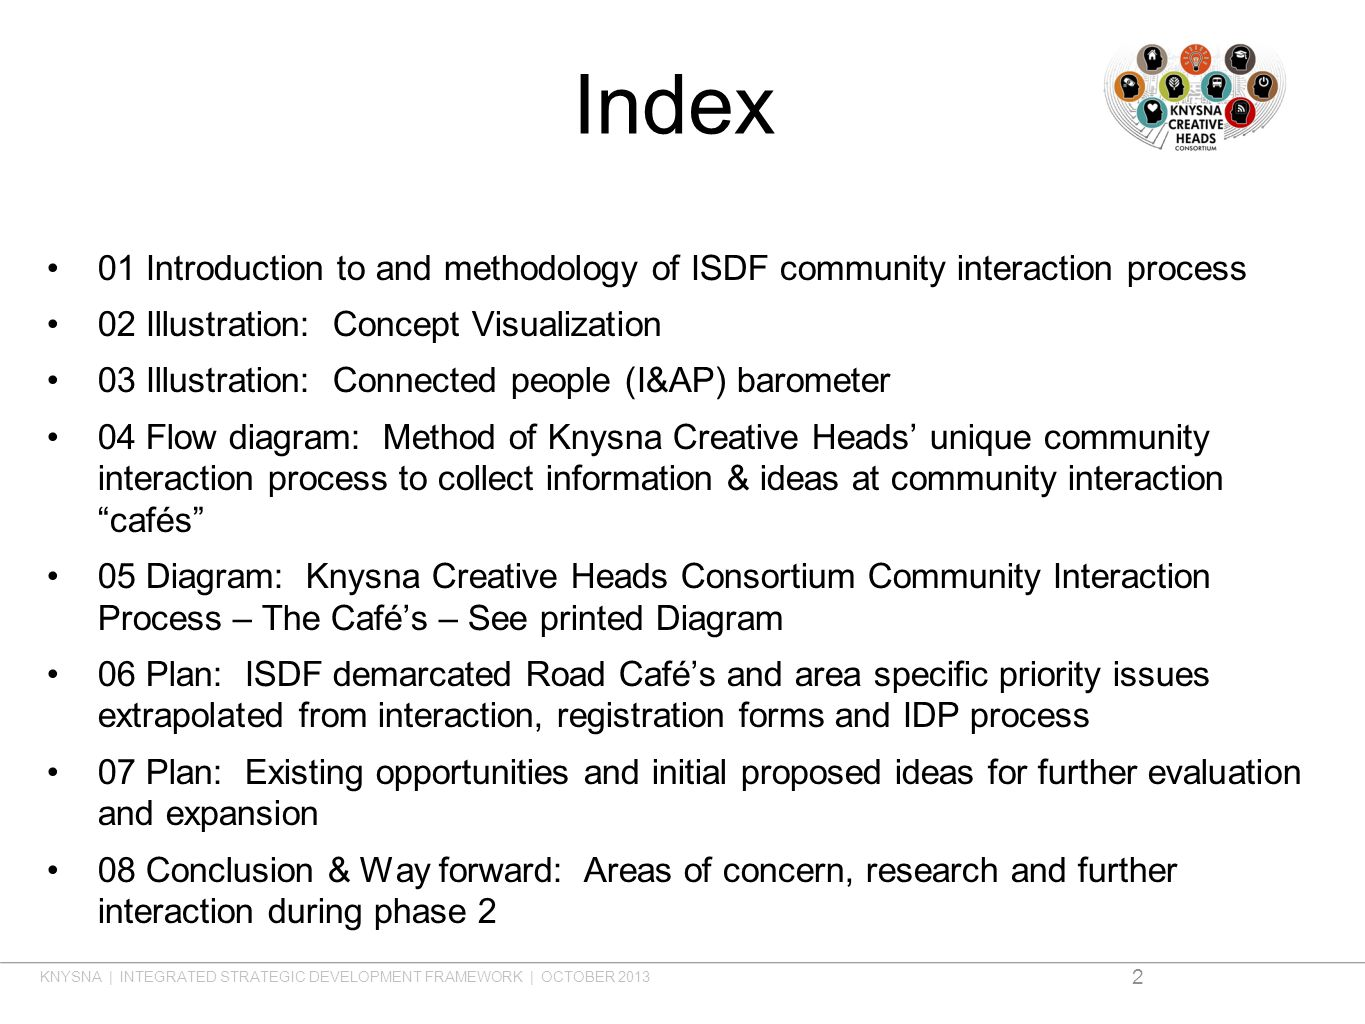 Index 01 Introduction to and methodology of ISDF community interaction process 02 Illustration: Concept Visualization 03 Illustration: Connected people (I&AP) barometer 04 Flow diagram: Method of Knysna Creative Heads unique community interaction process to collect information & ideas at community interaction cafés 05 Diagram: Knysna Creative Heads Consortium Community Interaction Process – The Cafés – See printed Diagram 06 Plan: ISDF demarcated Road Cafés and area specific priority issues extrapolated from interaction, registration forms and IDP process 07 Plan: Existing opportunities and initial proposed ideas for further evaluation and expansion 08 Conclusion & Way forward: Areas of concern, research and further interaction during phase 2 2 KNYSNA | INTEGRATED STRATEGIC DEVELOPMENT FRAMEWORK | OCTOBER 2013